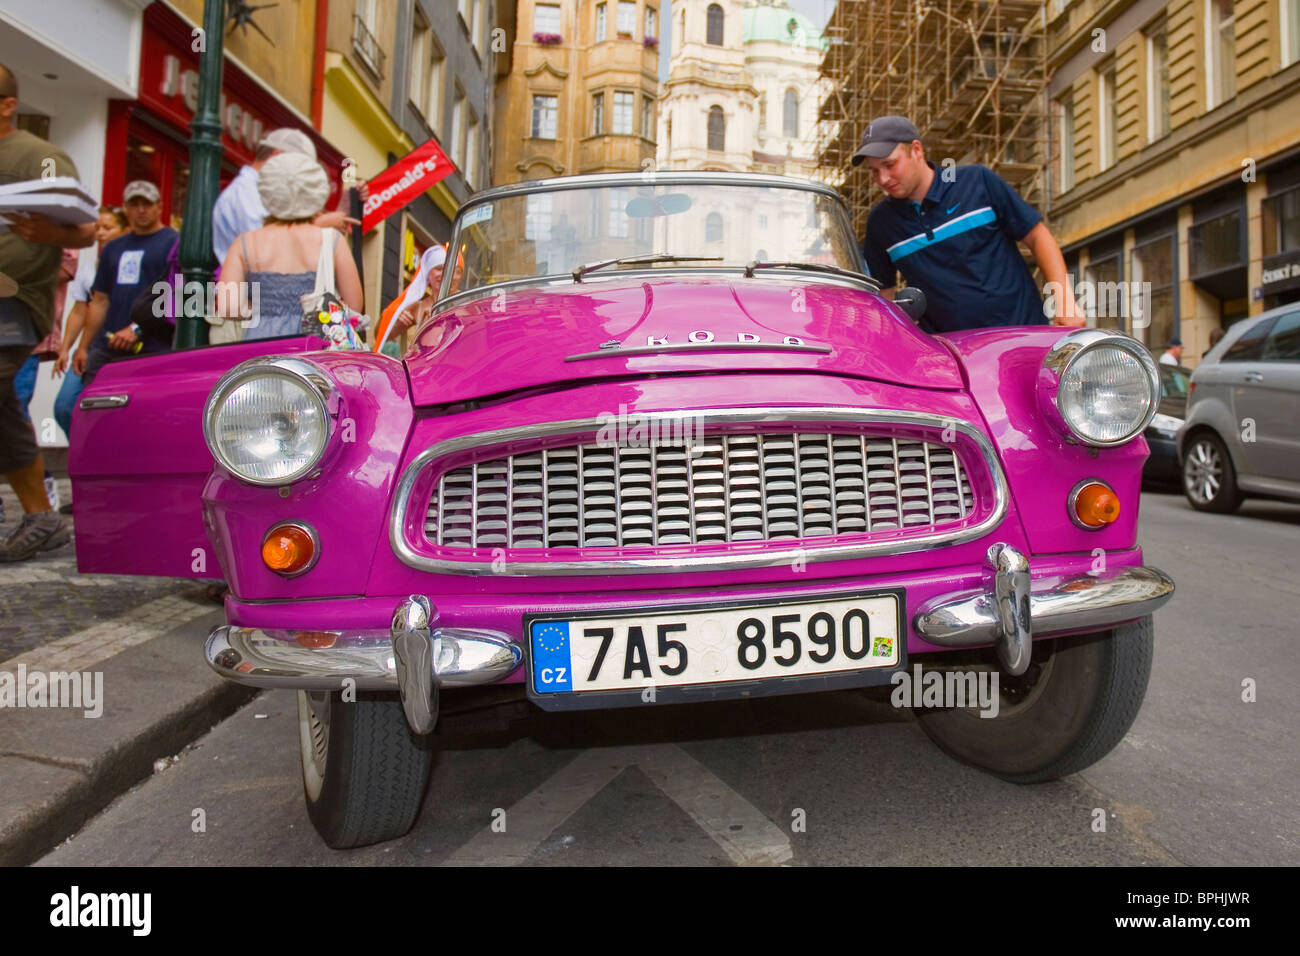 Old Skoda car parked in the Old Town in Prague. Used to take tourists on tours of the historical center. - Stock Image